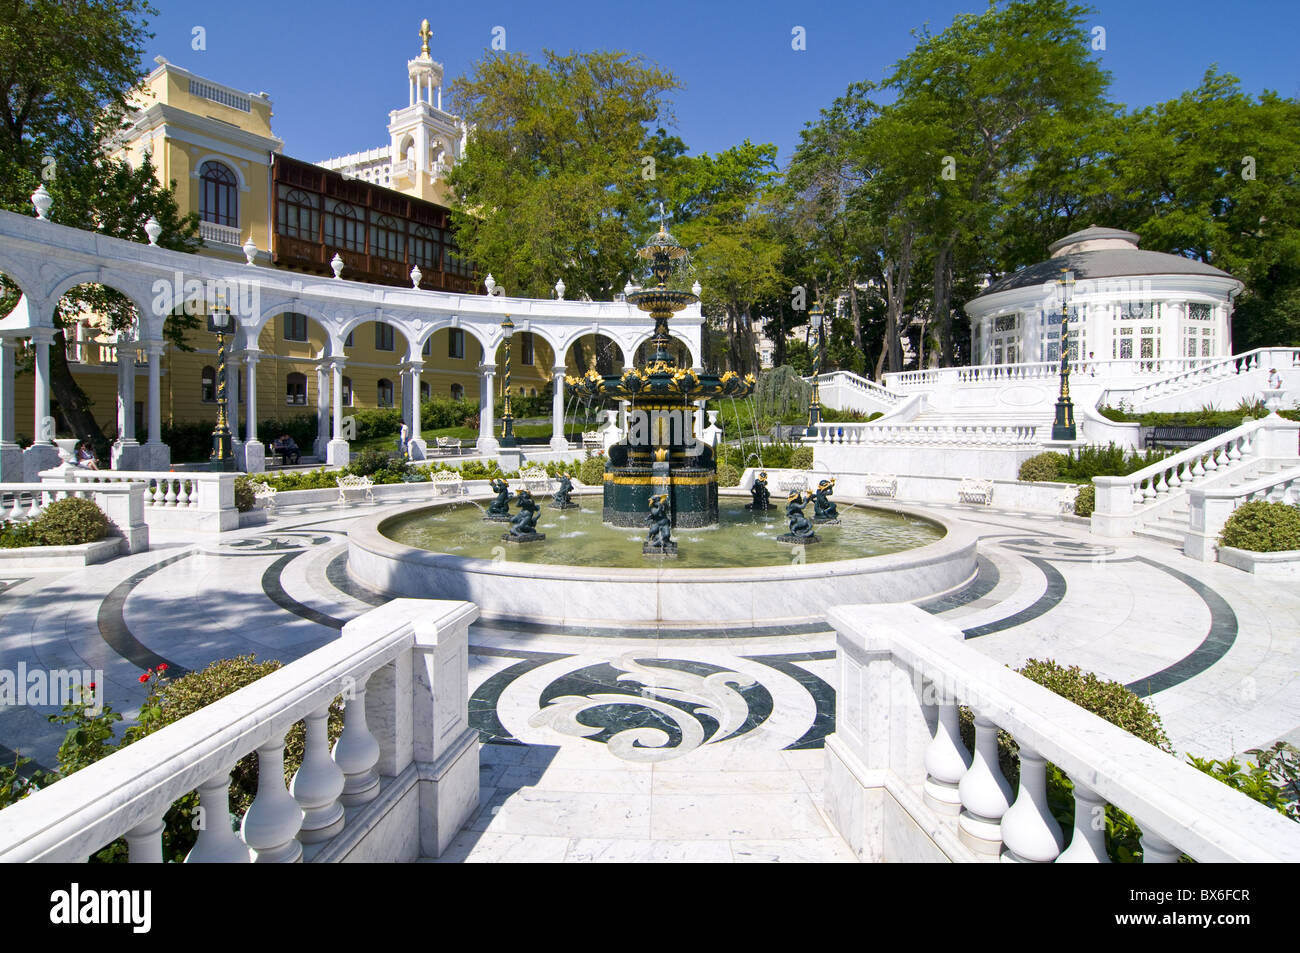 Baroque fountain square at the old city of Baku, Azerbaijan, Central Asia, Asia - Stock Image